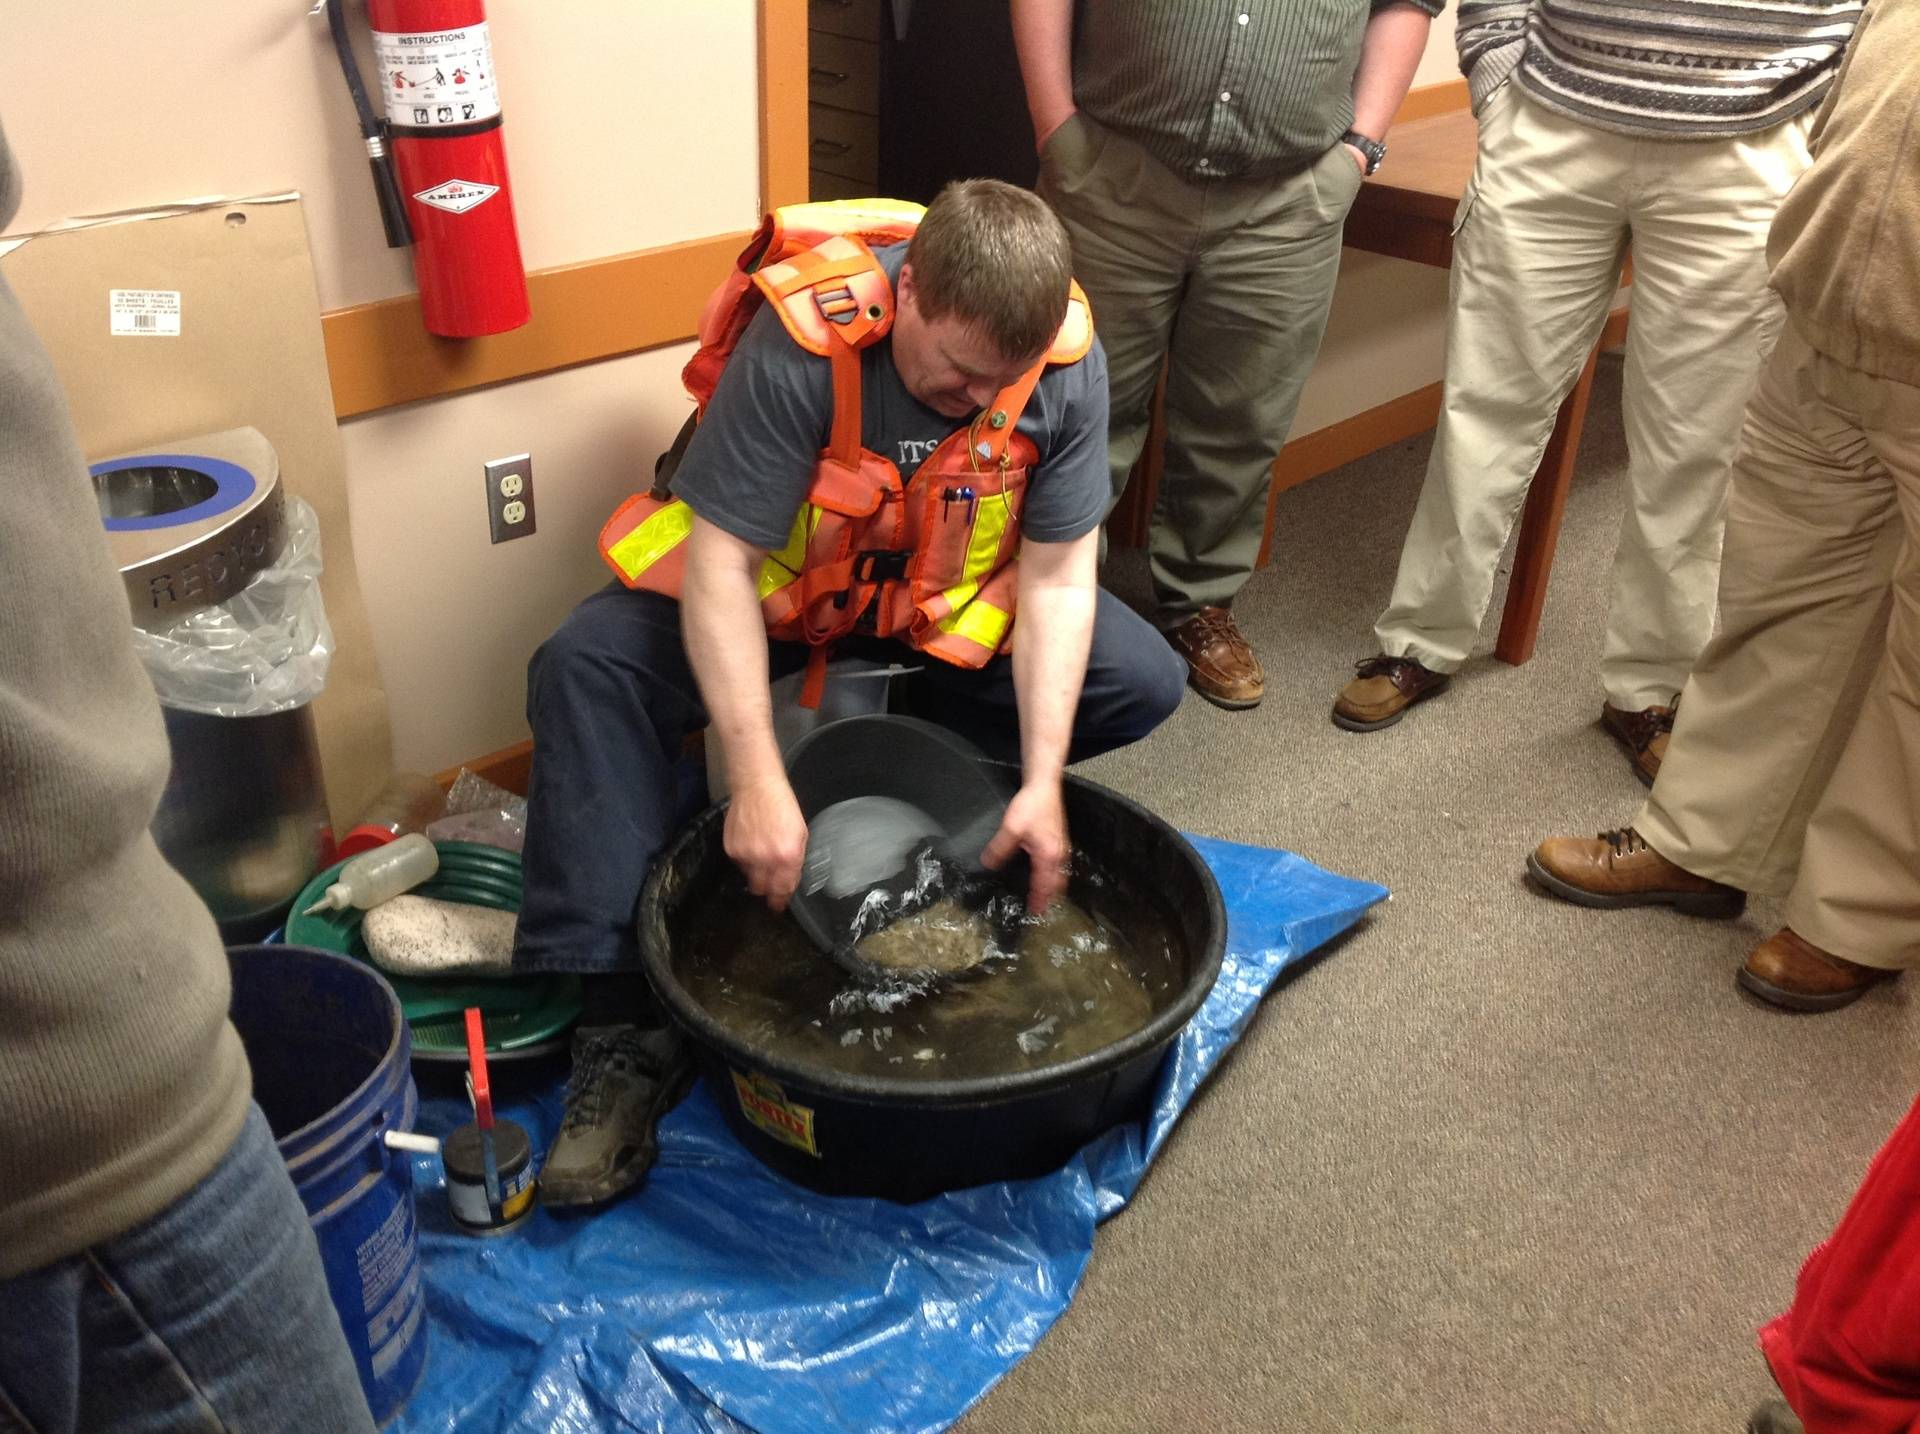 Fred demonstrates gold panning, a traditional and tried-and-true method of recovering gold